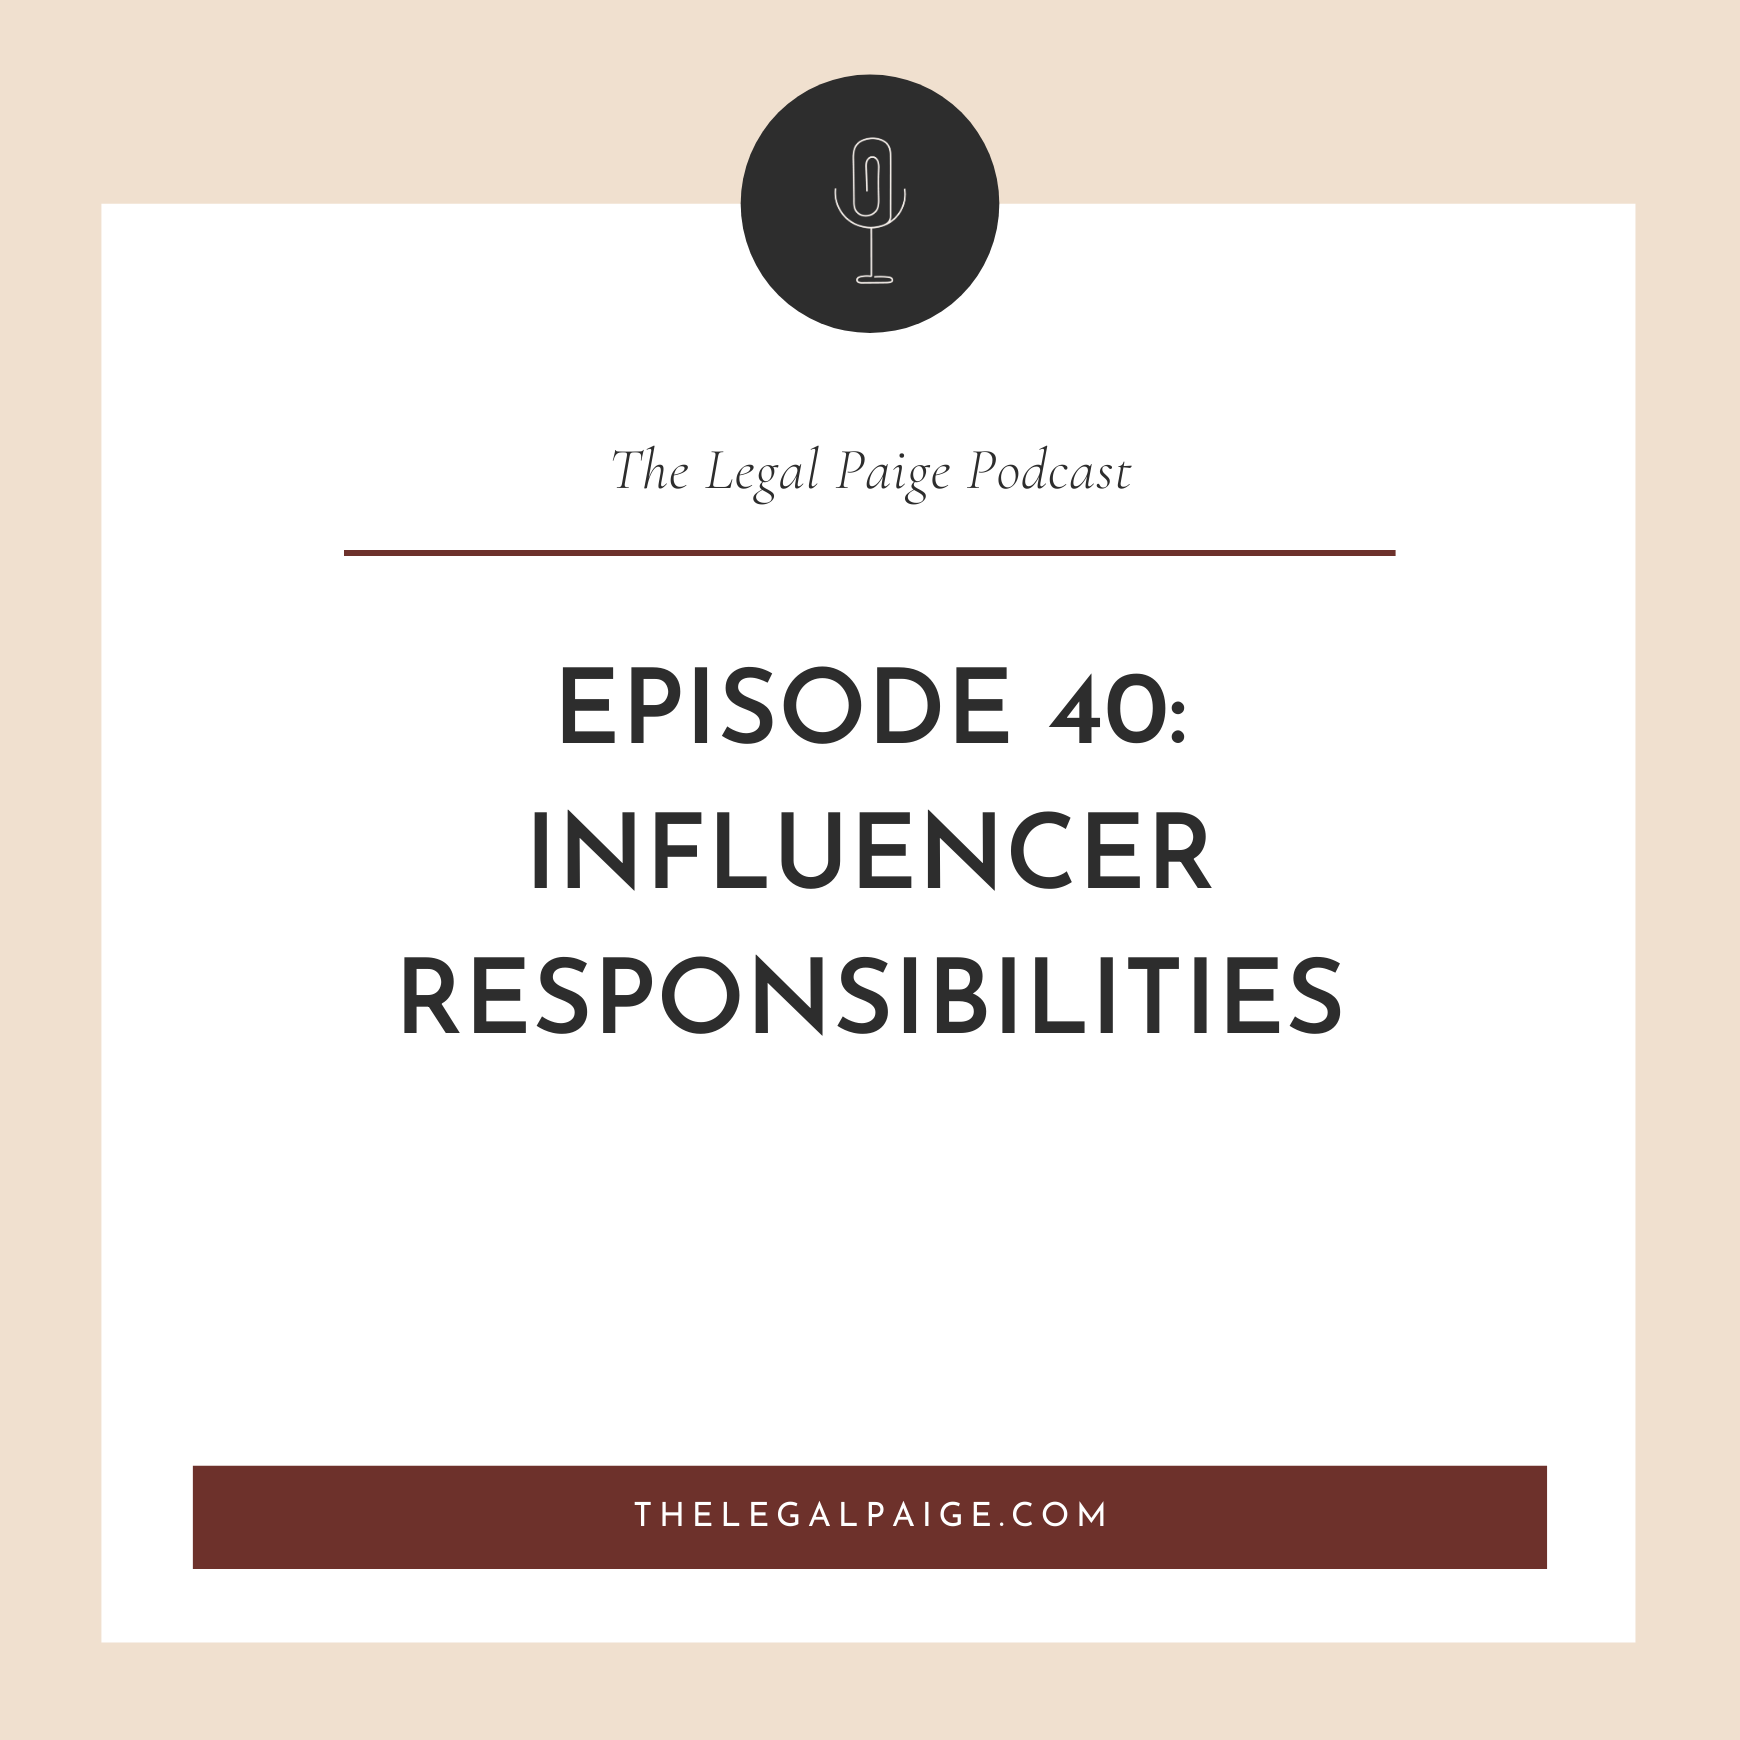 Episode 40: Influencer Responsibilities